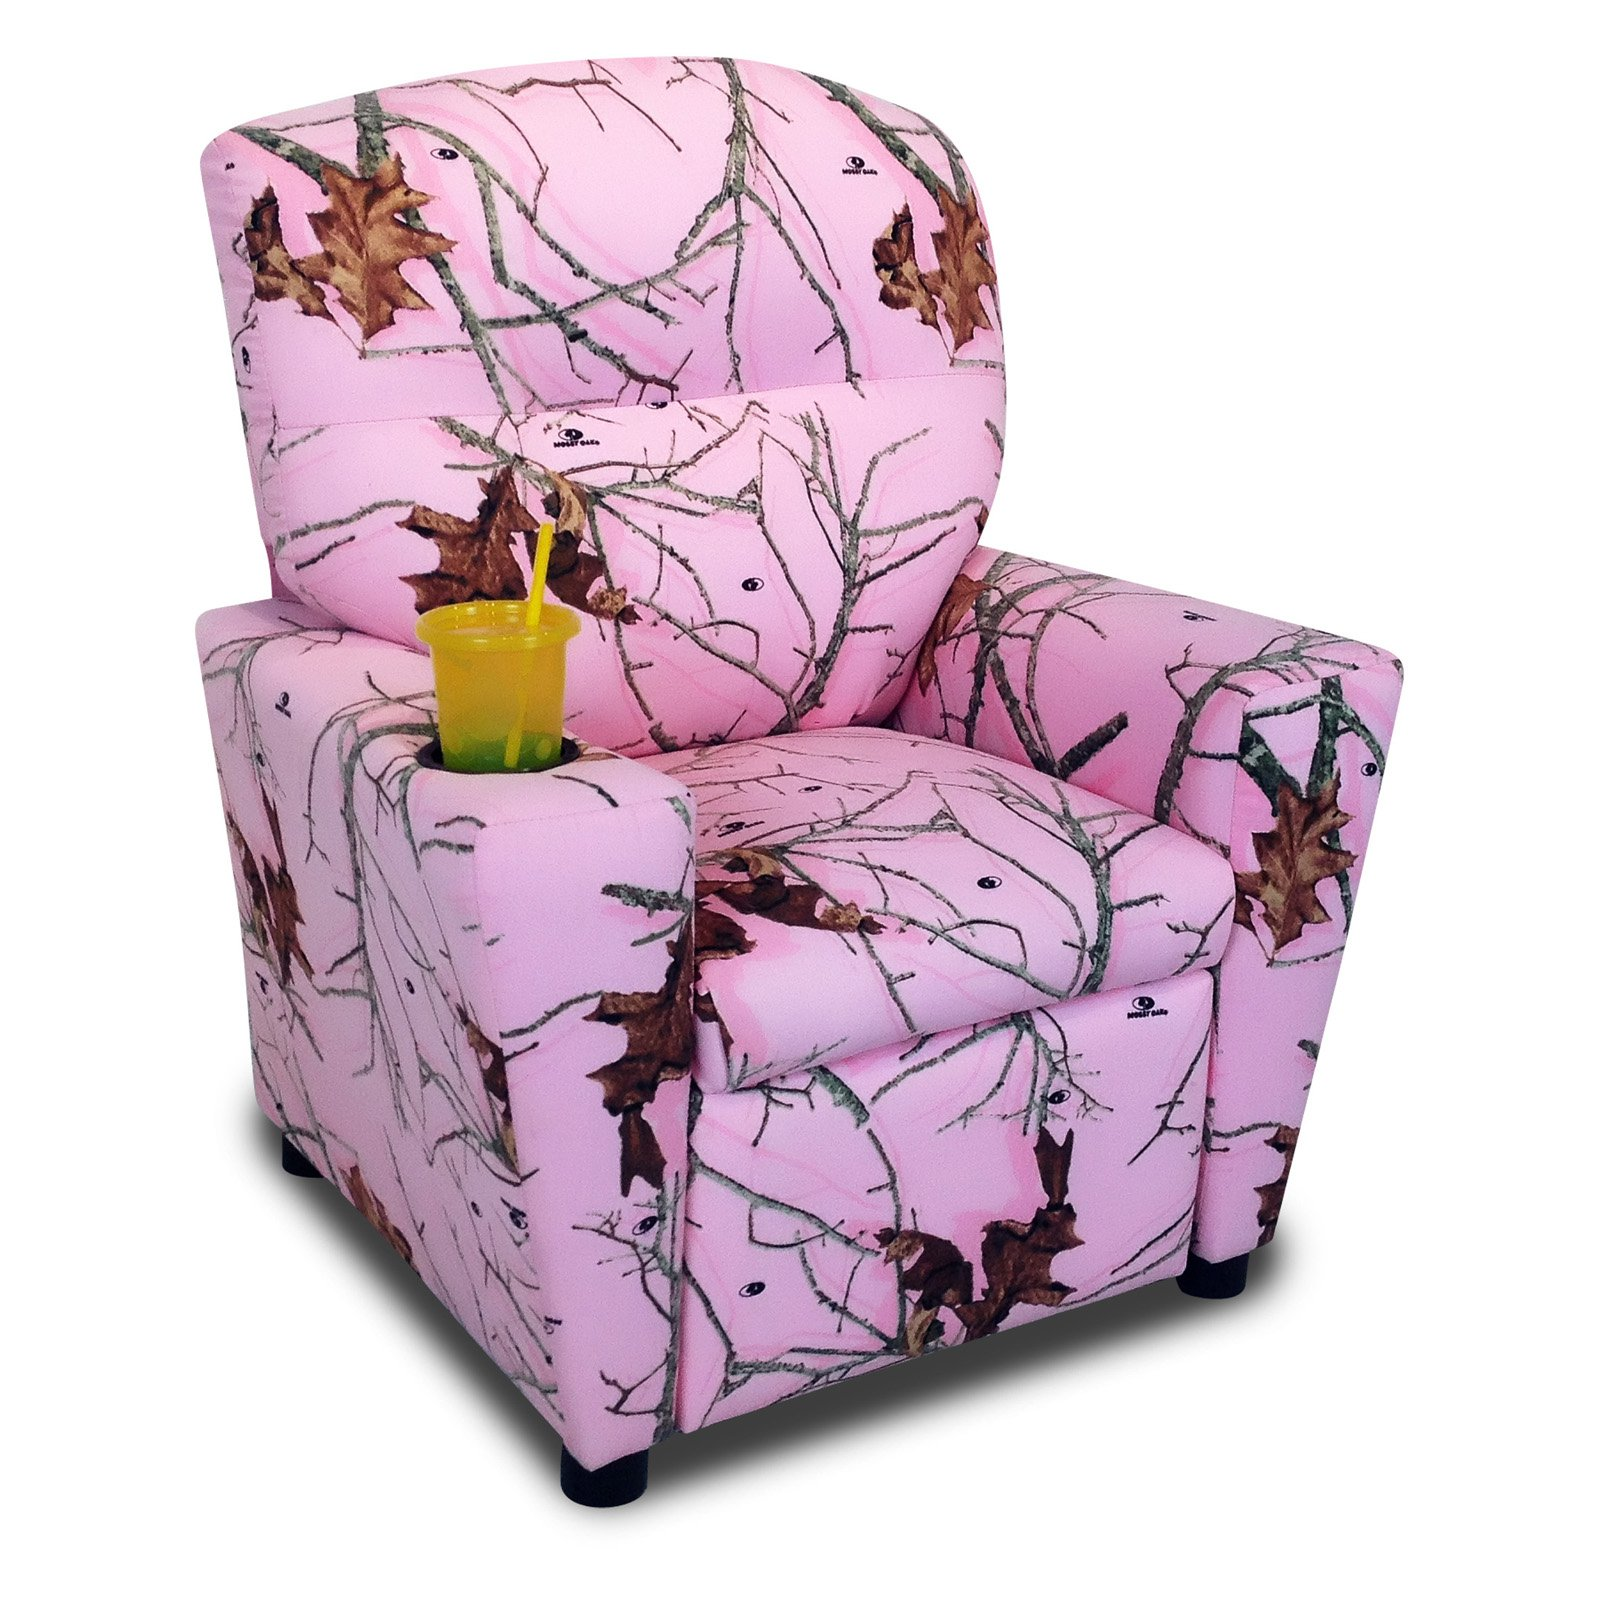 Mossy Oak Lifestyle Pink Kid's Recliner with cupholder